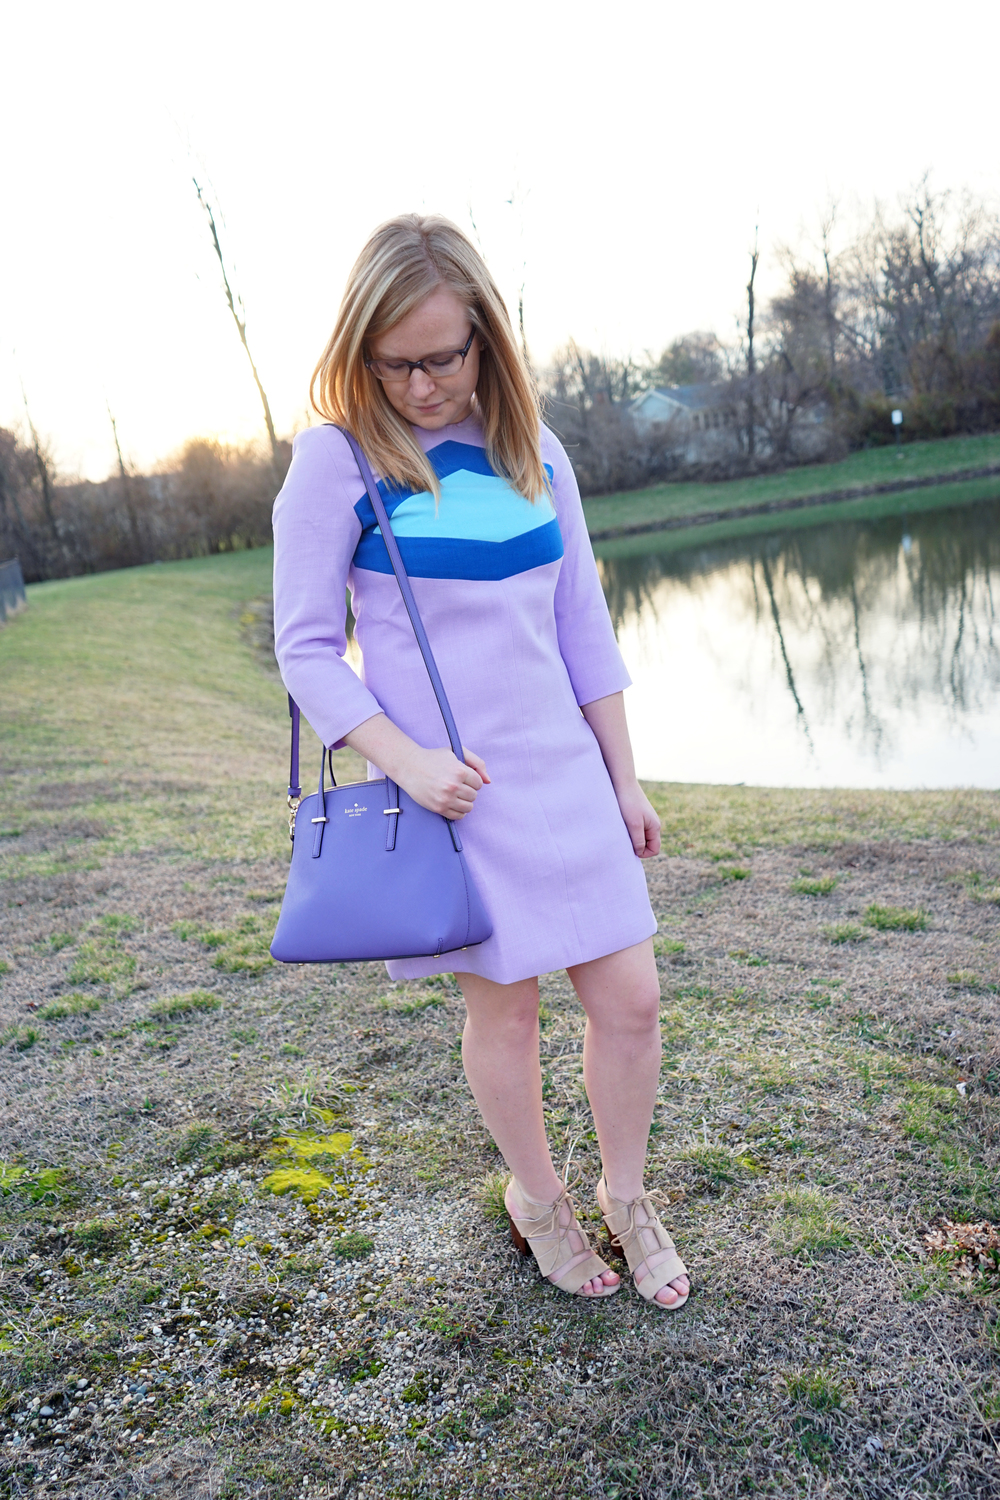 SheIn SheInside purple colorblock dress, Steve Madden Emalena sandals, Kate Spade cedar street purse - Maggie a la Mode